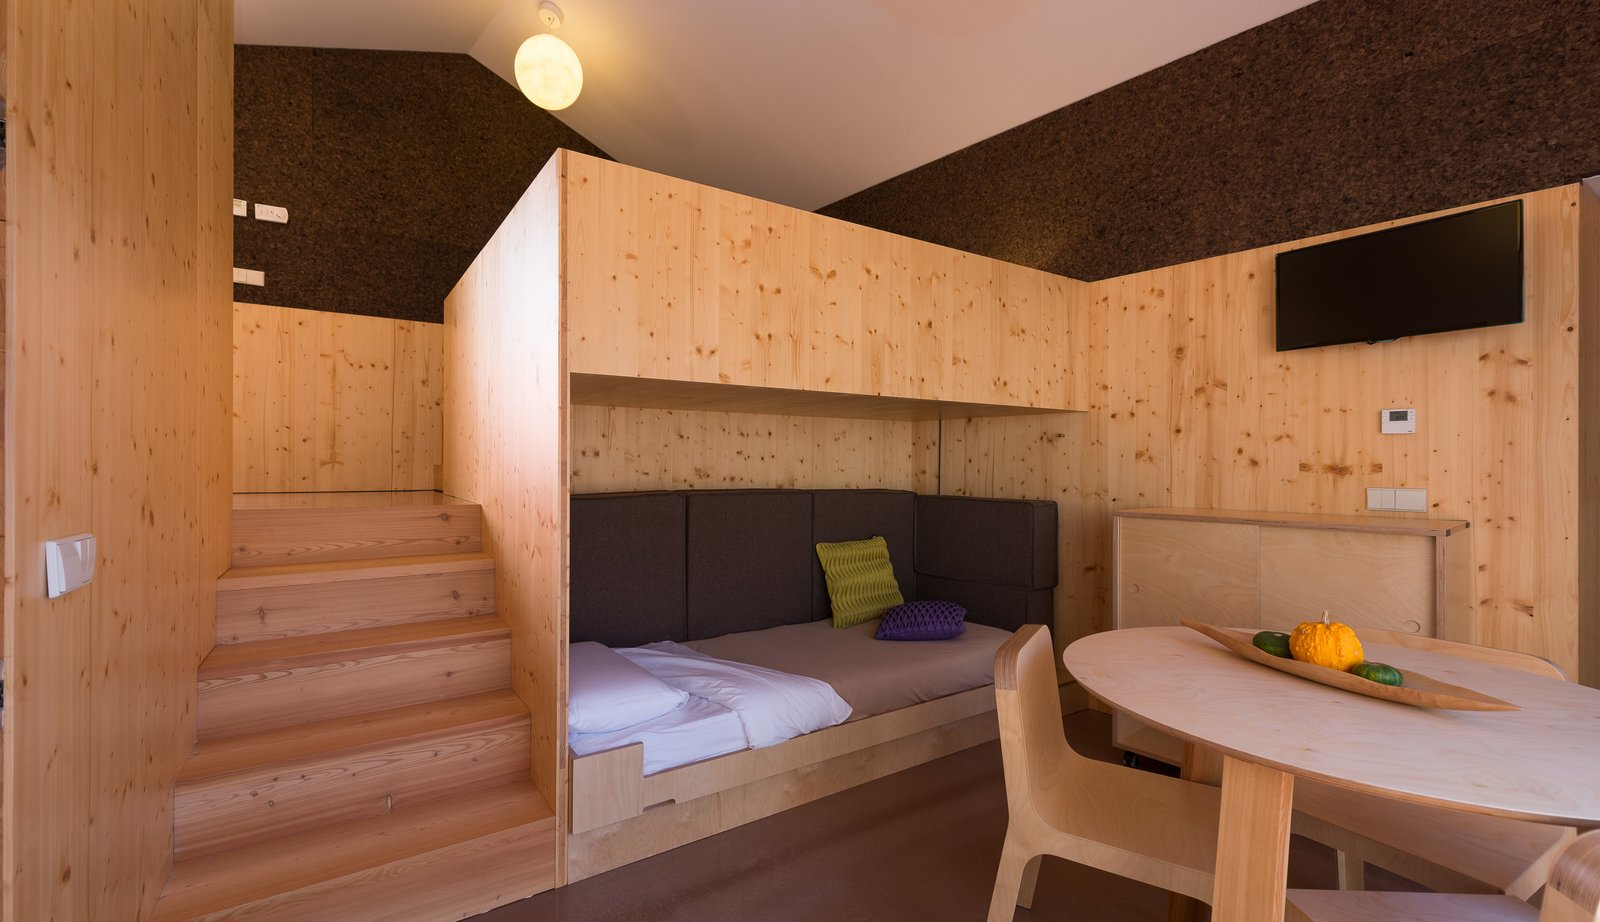 Living Room, Bench, Chair, Table, Ceiling Lighting, Storage, and Light Hardwood Floor  Photo 7 of 16 in Stay in a Tiny, Eco-Friendly House in a Portuguese Schist Village